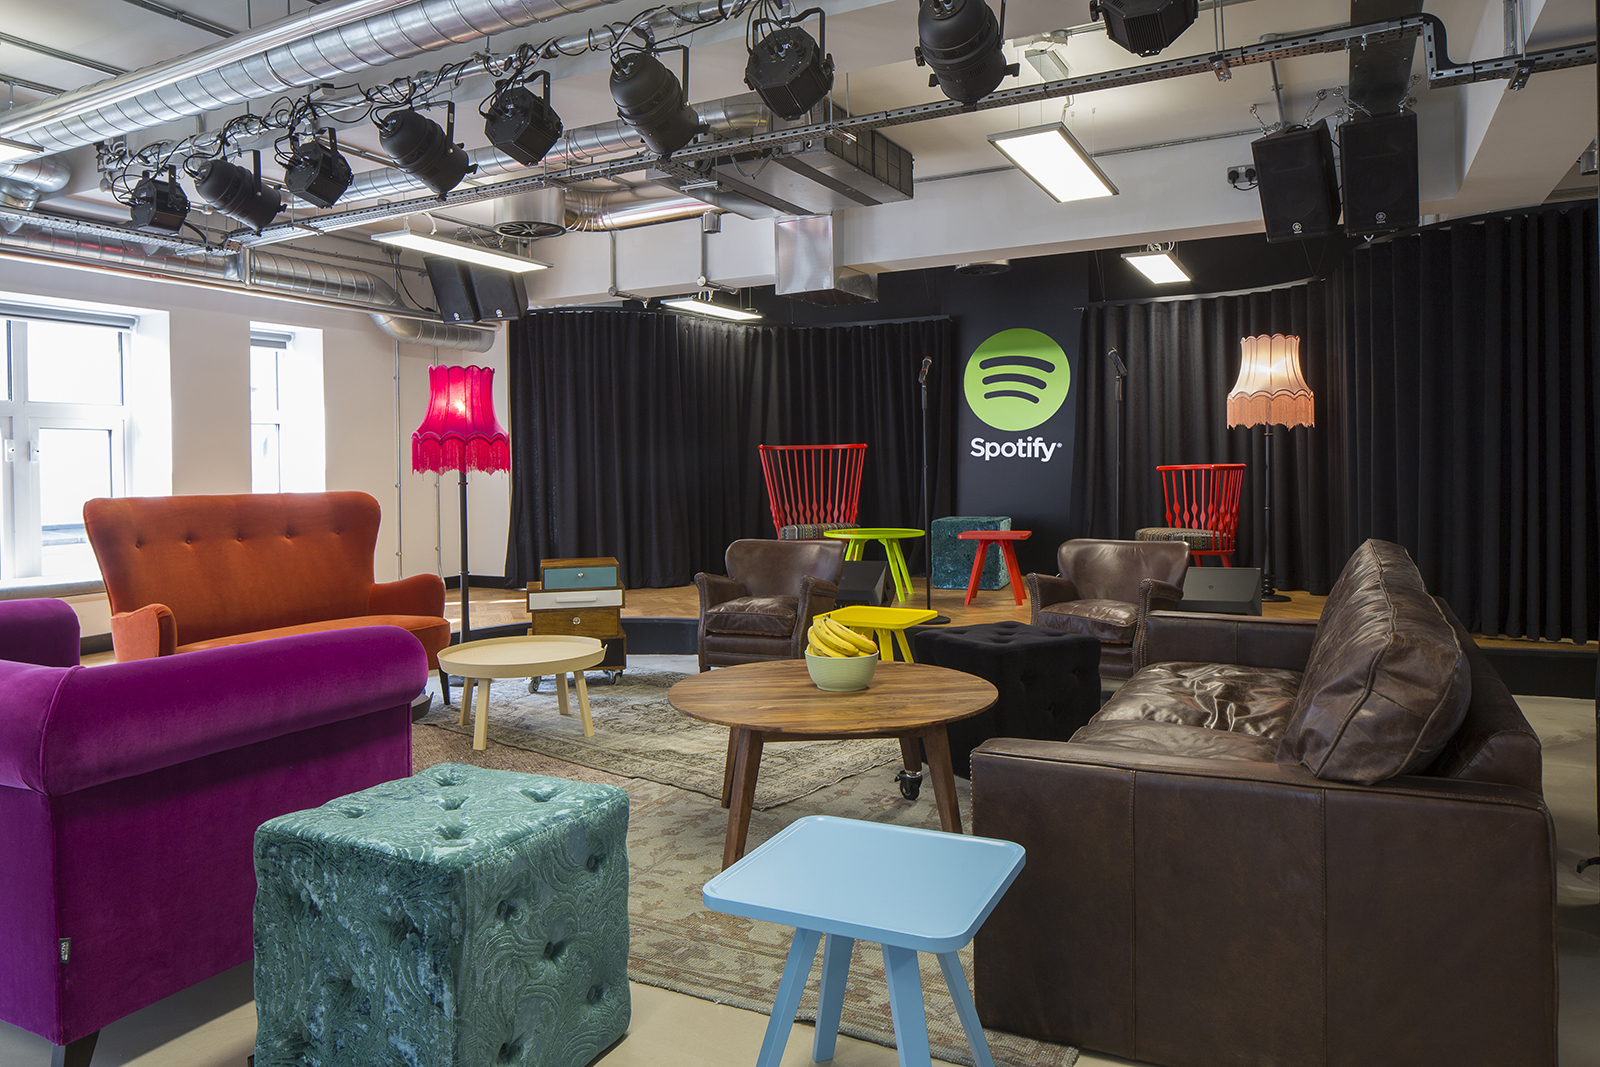 spotify-london-office-3